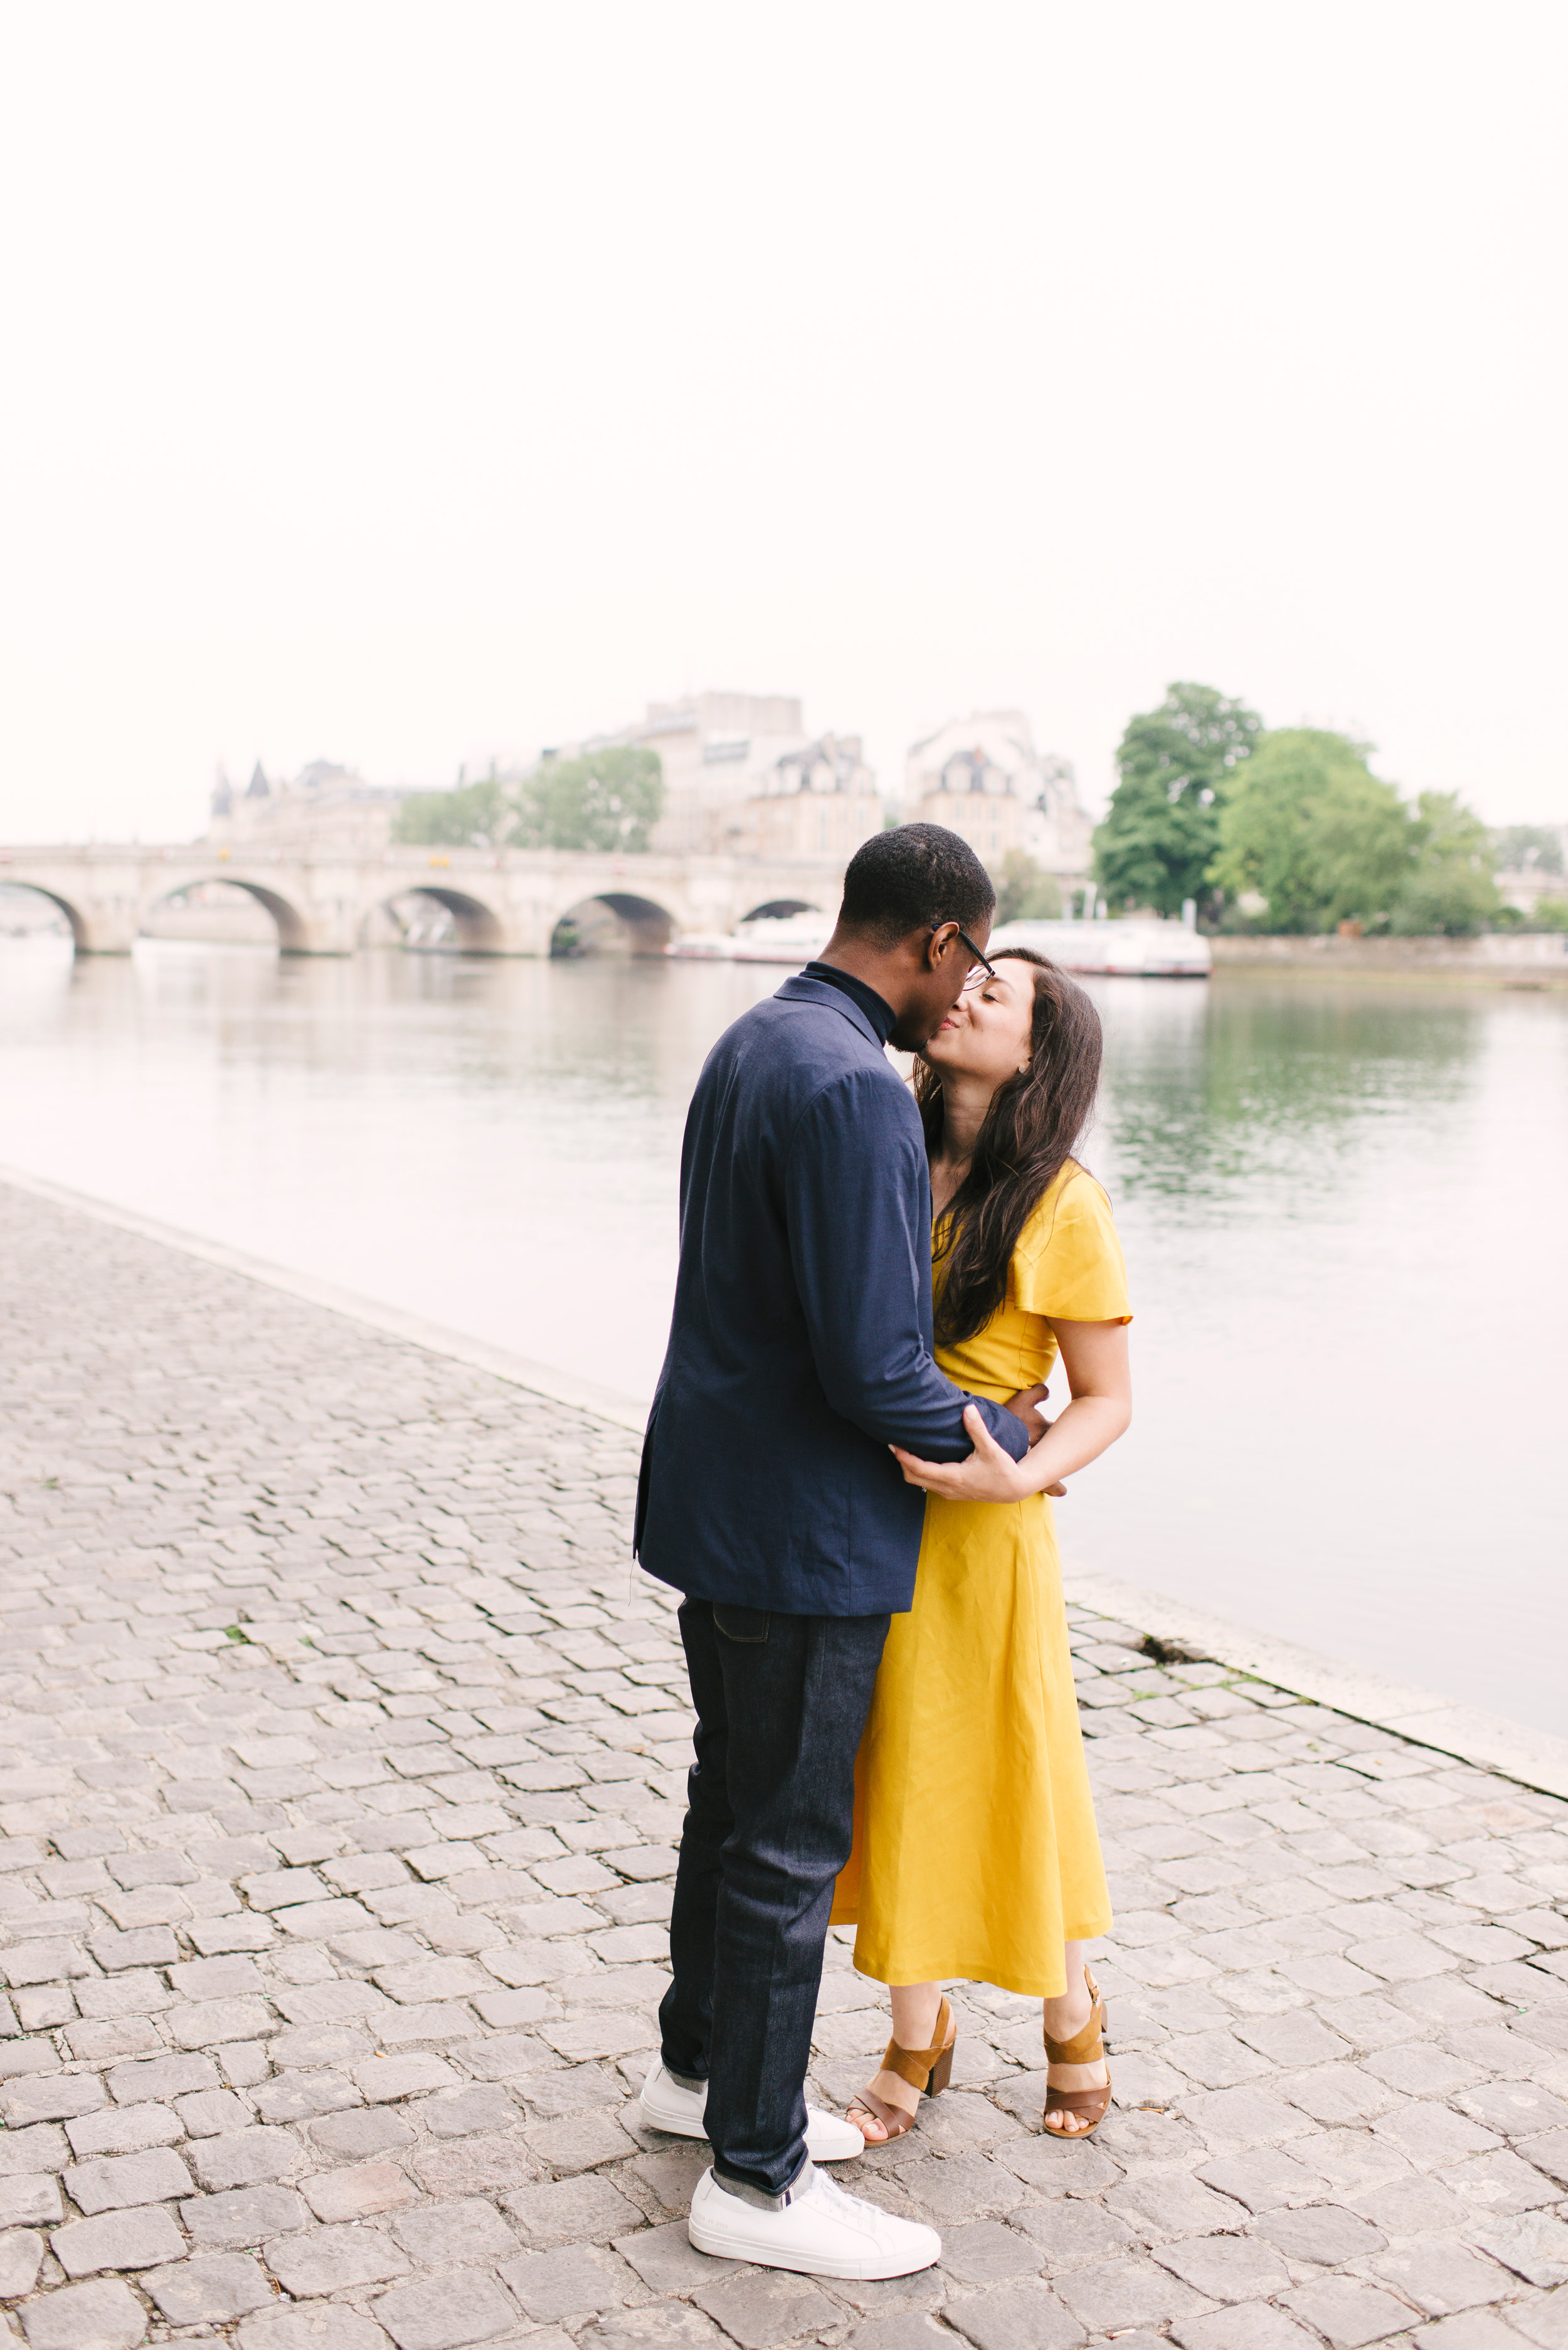 Couple-photoshoot-Paris-Pont-des-arts-Louvre-PalaisRoyale-011.jpg